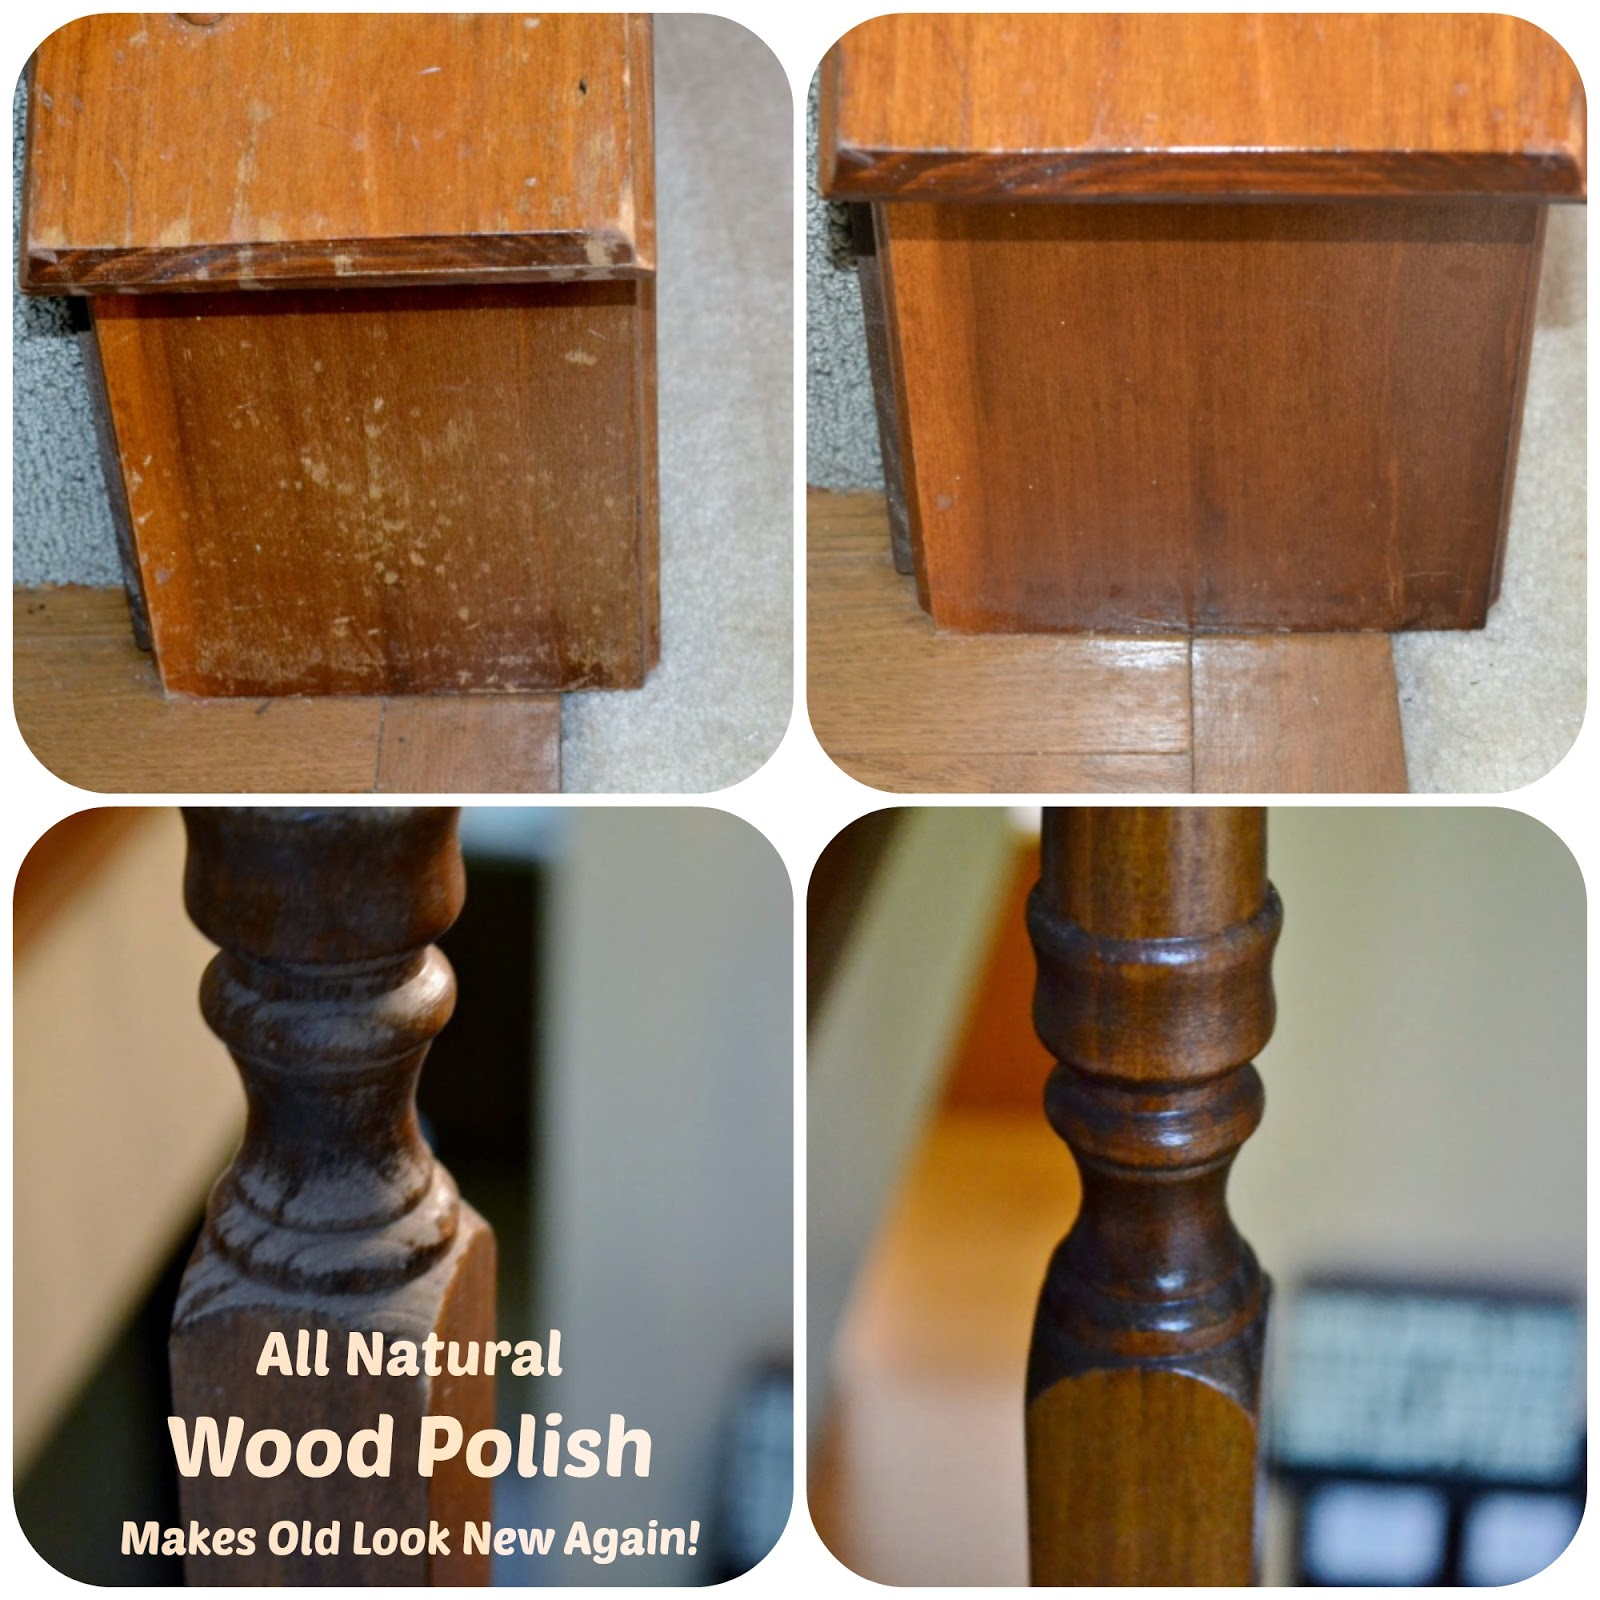 I Have Seen A Few Places On The Internet How You Can Make Old Wood Furniture Look New By Using Homemade Polish Wanted To Try It Our Baseboards